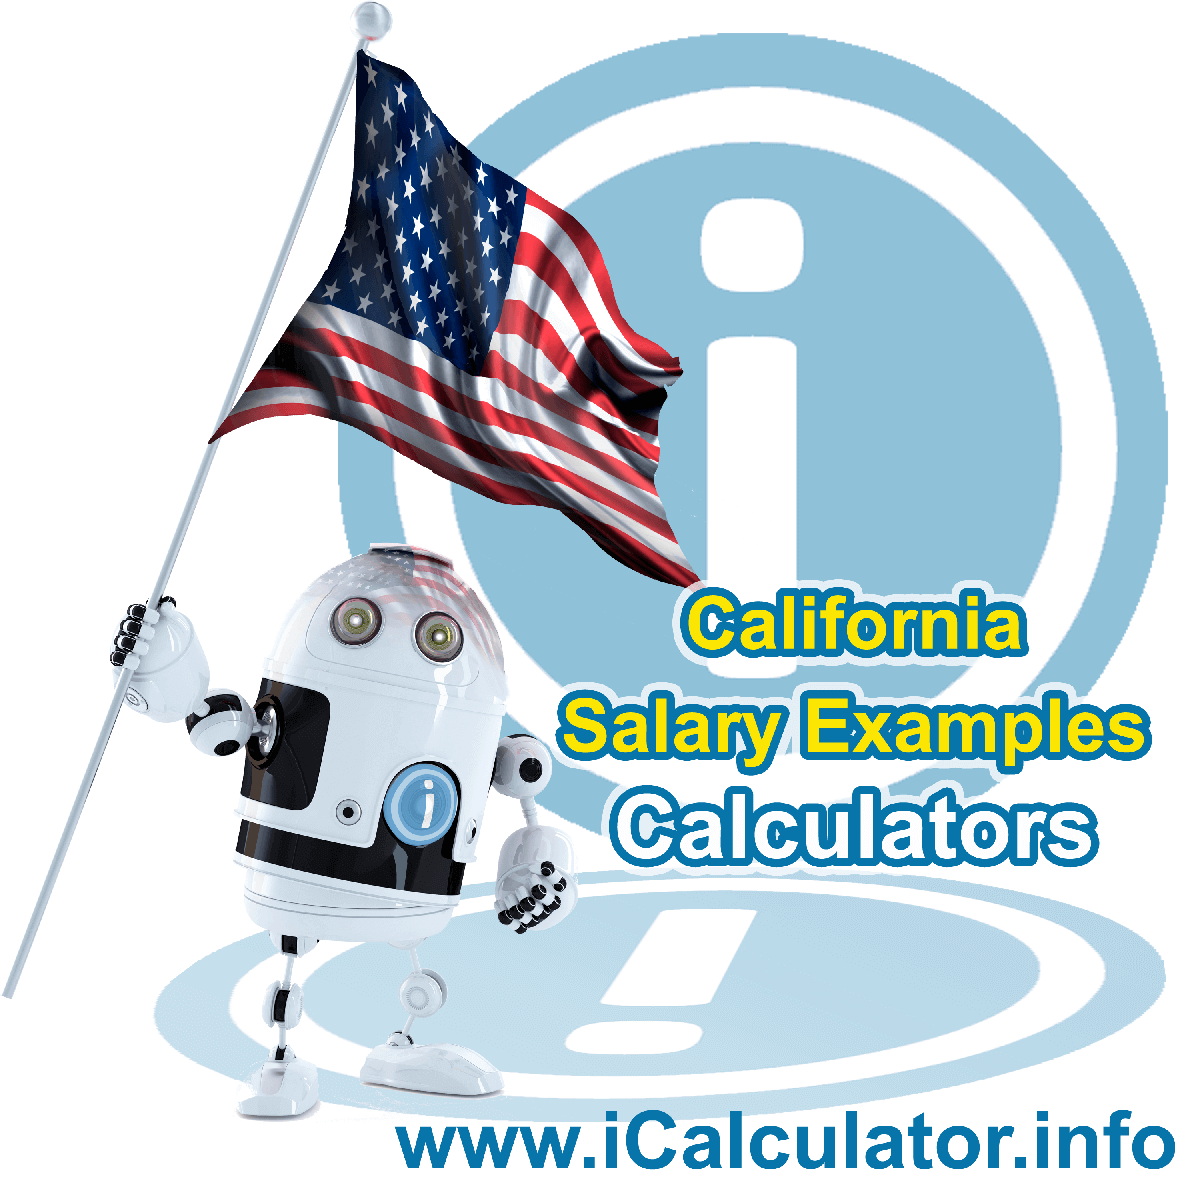 California Salary Example for $190.00 in 2020 | iCalculator | $190.00 salary example for employee and employer paying California State tincome taxes. Detailed salary after tax calculation including California State Tax, Federal State Tax, Medicare Deductions, Social Security, Capital Gains and other income tax and salary deductions complete with supporting California state tax tables